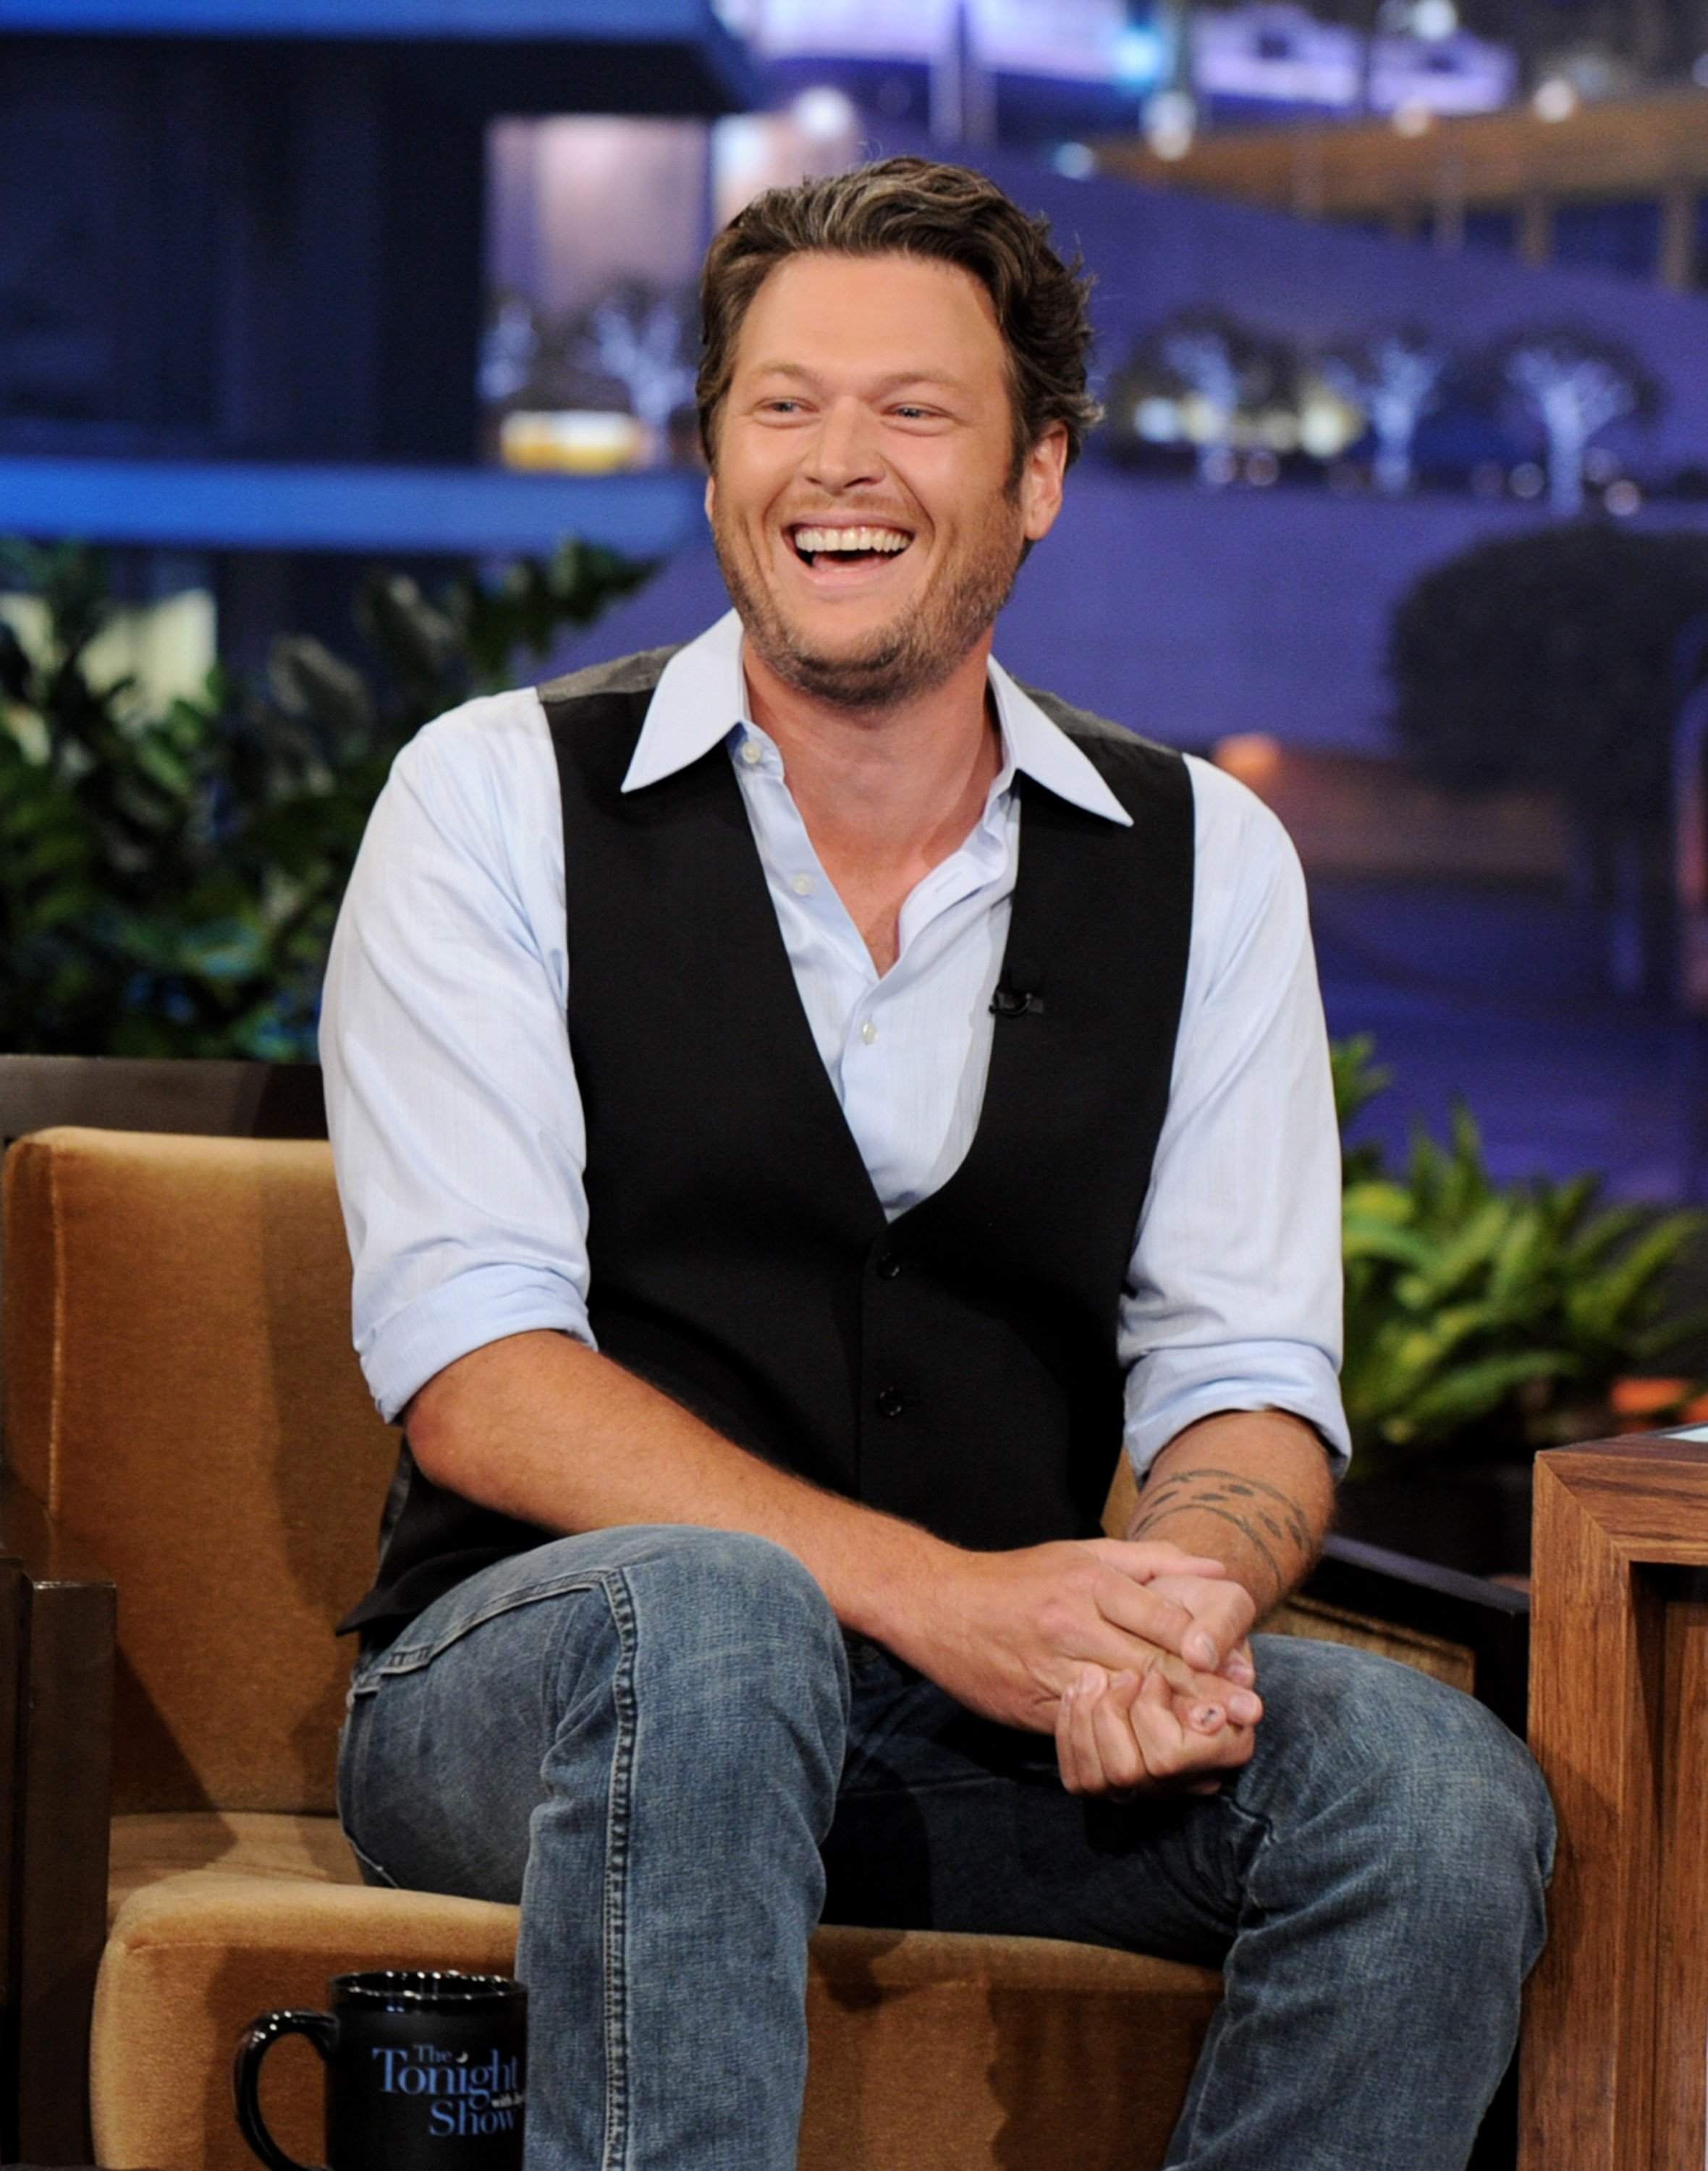 """Blake Shelton during his 2011 appearance on the """"Tonight Show with Jay Leno"""" in NBC Studios. 